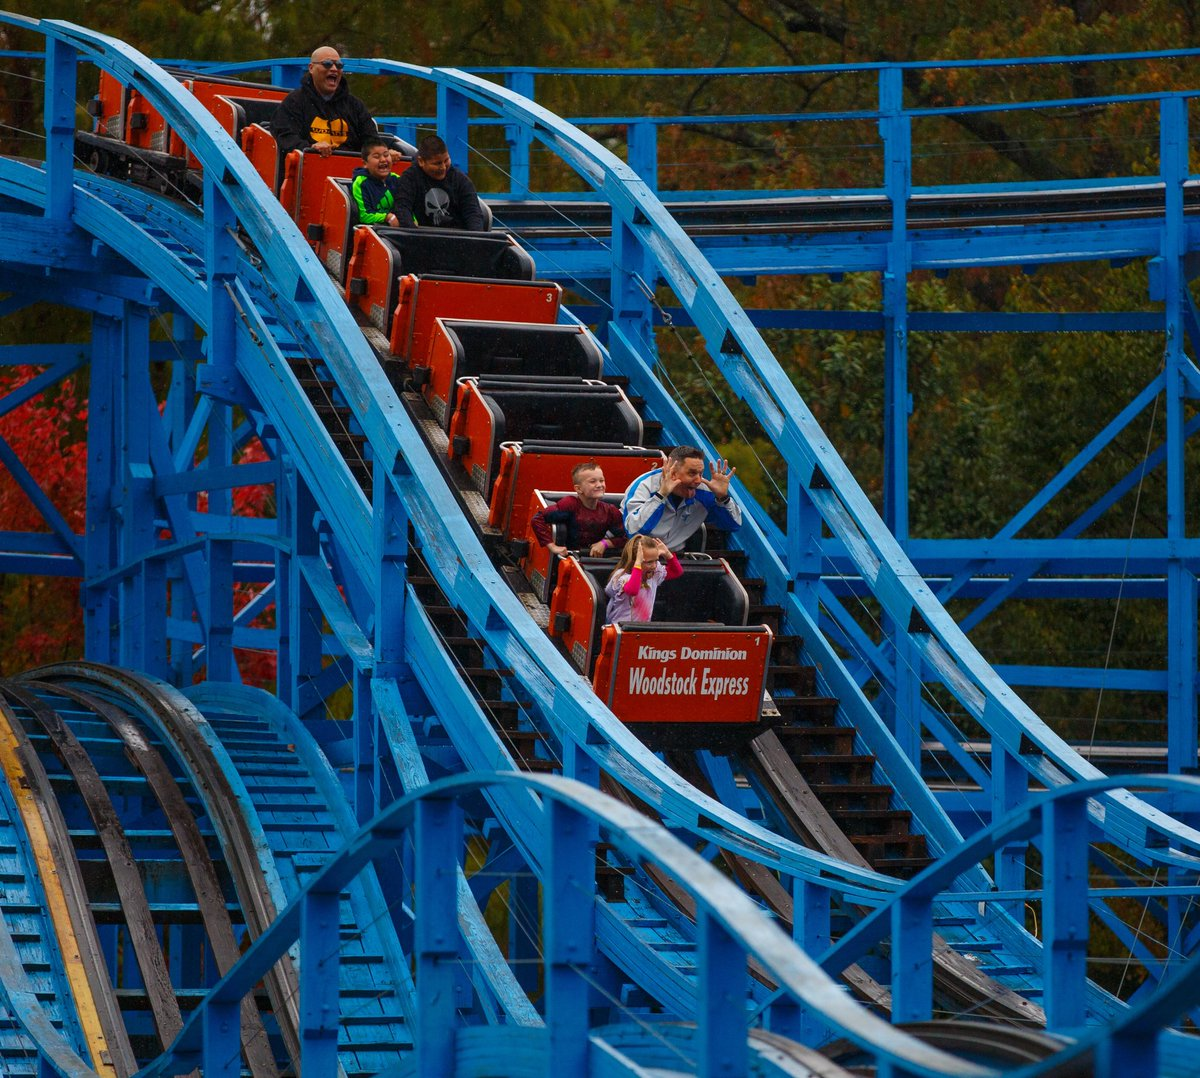 Kings dominion discount coupons -  Remember That Time We Rode The Roller Coaster In The Rain Made Silly Faces Lifetime Of Memories Being Made At Kingsdominionva Https T Co Xkajd2n3hq